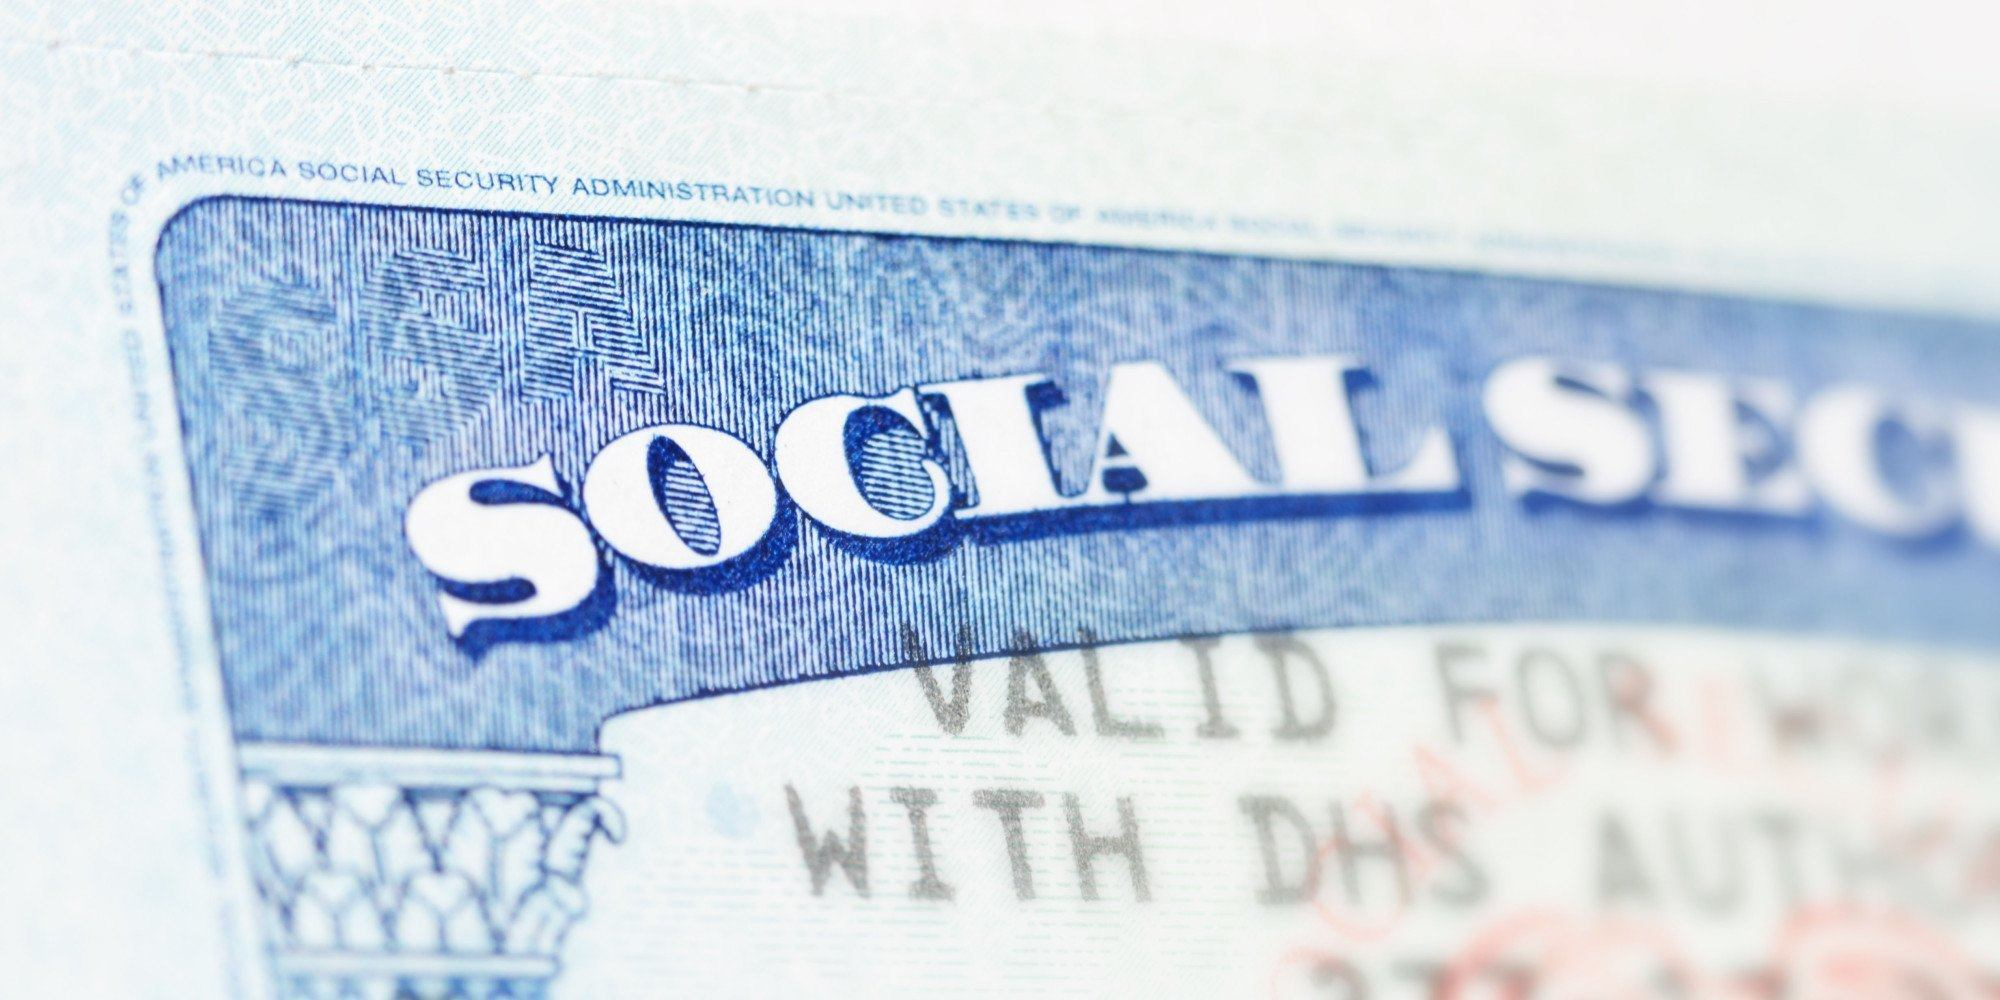 3 Ways To Have Your Social Security Number Stolen